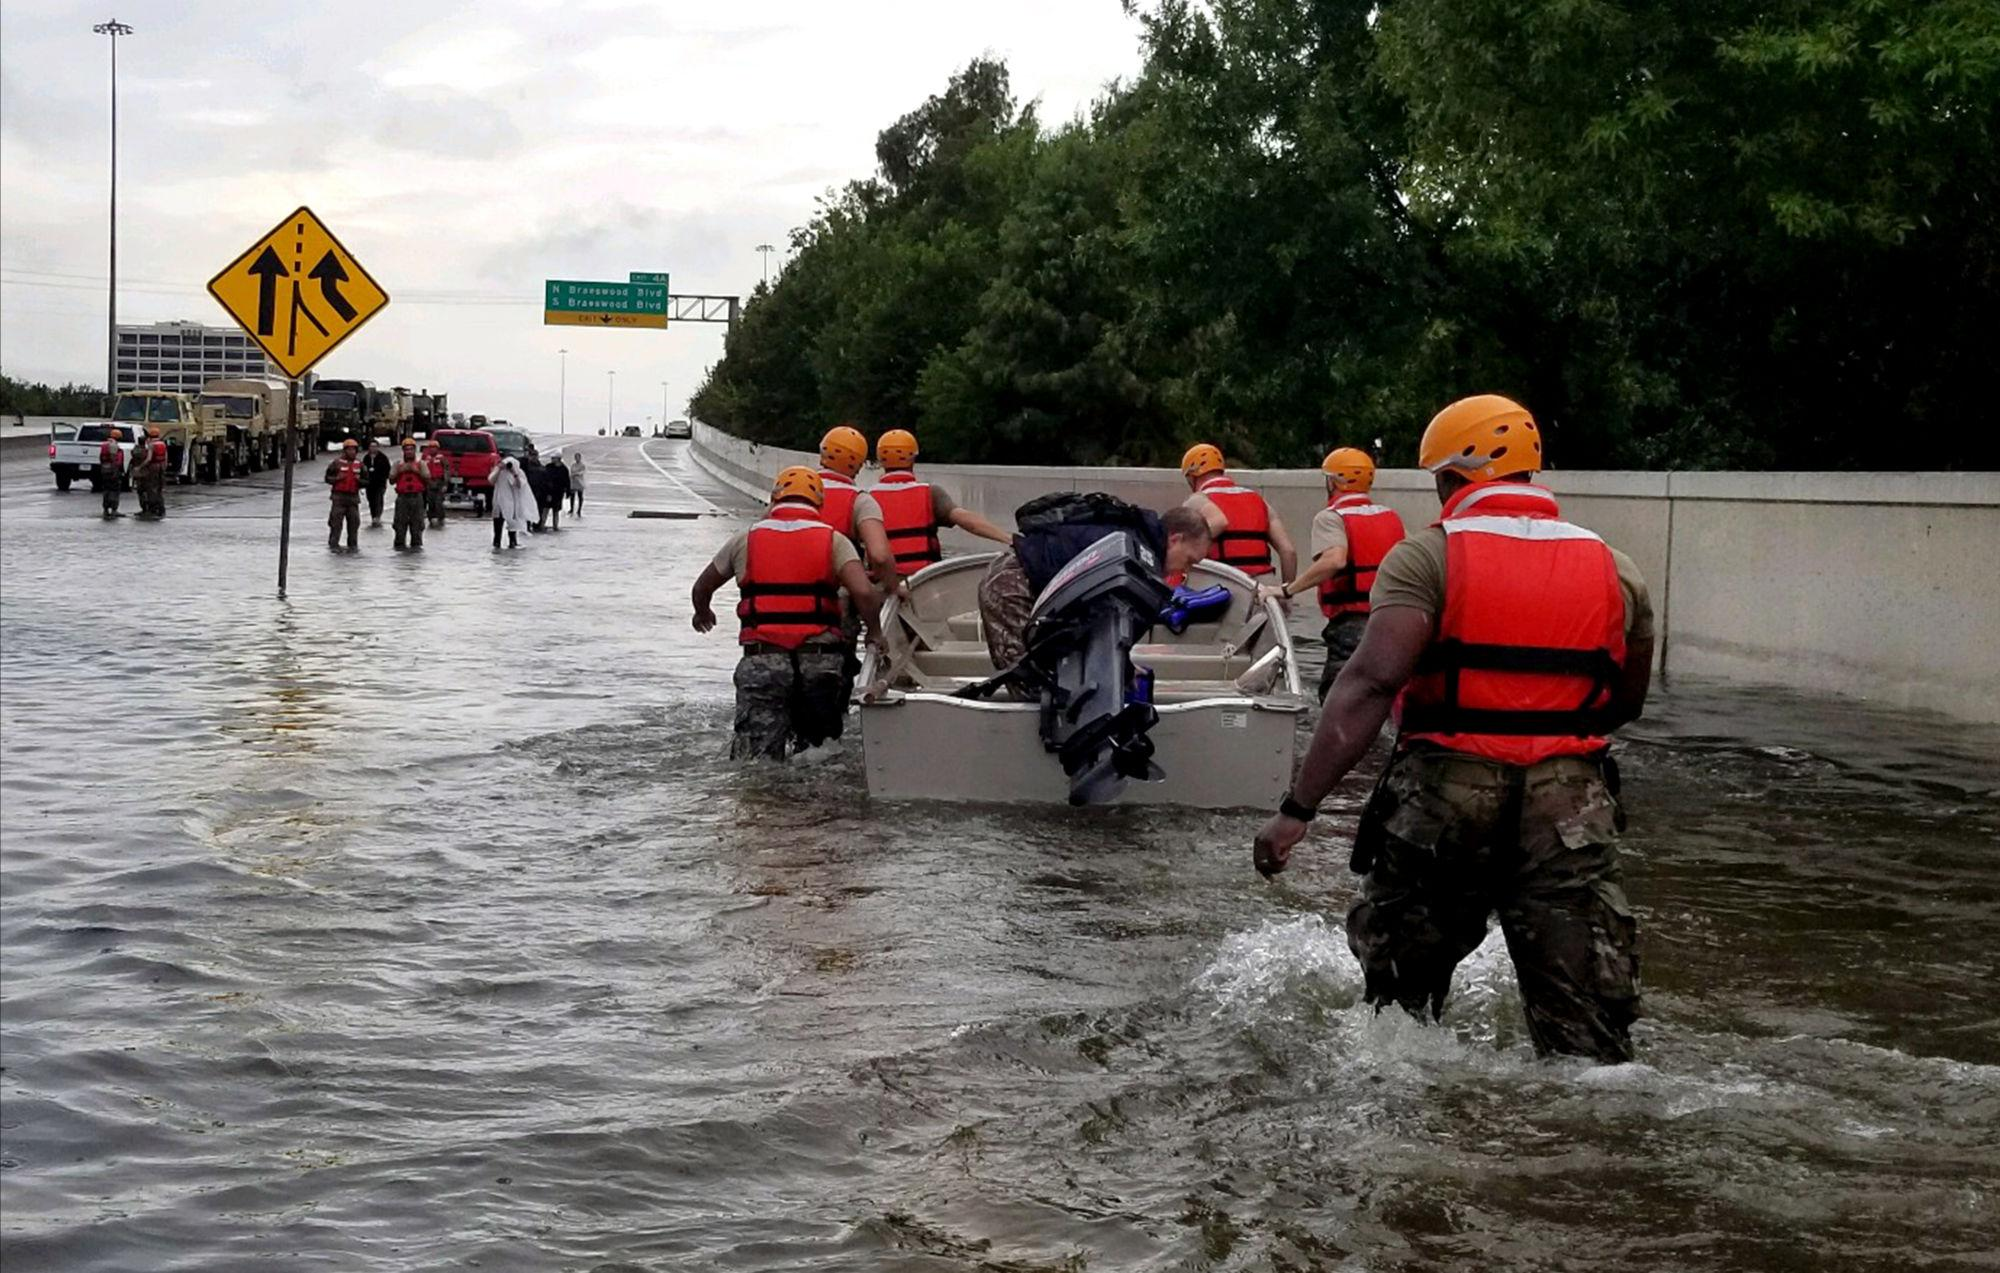 Rushing to help, members of the Texas National Guard have been sent in.